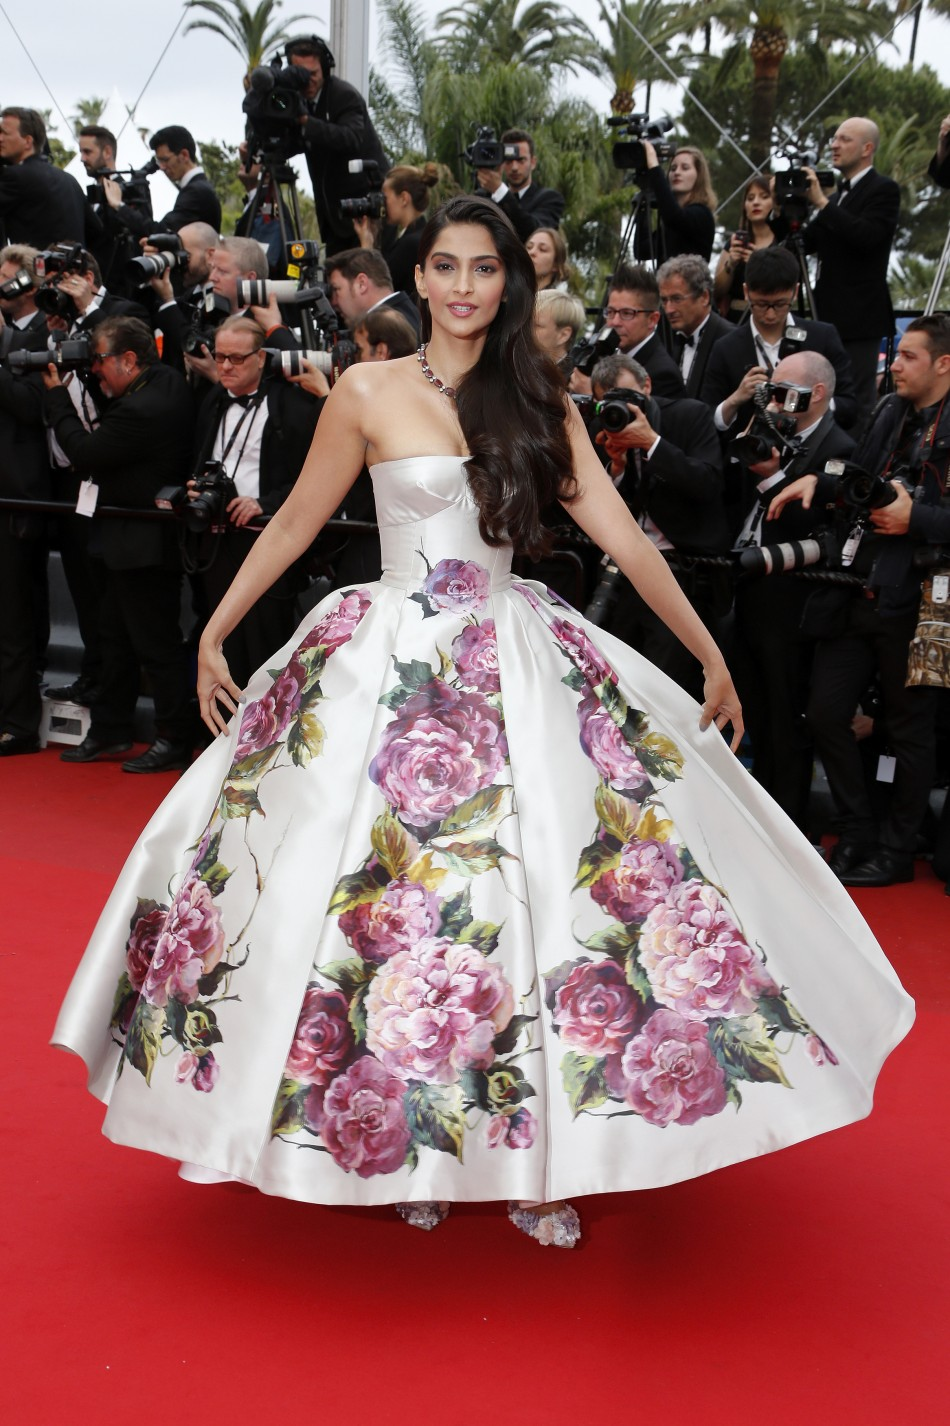 Actress Sonam Kapoor poses on the red carpet as she arrives for the screening of the film Jeune  Jolie Young  Beautiful in competition during the 66th Cannes Film Festival in Cannes May 16, 2013.